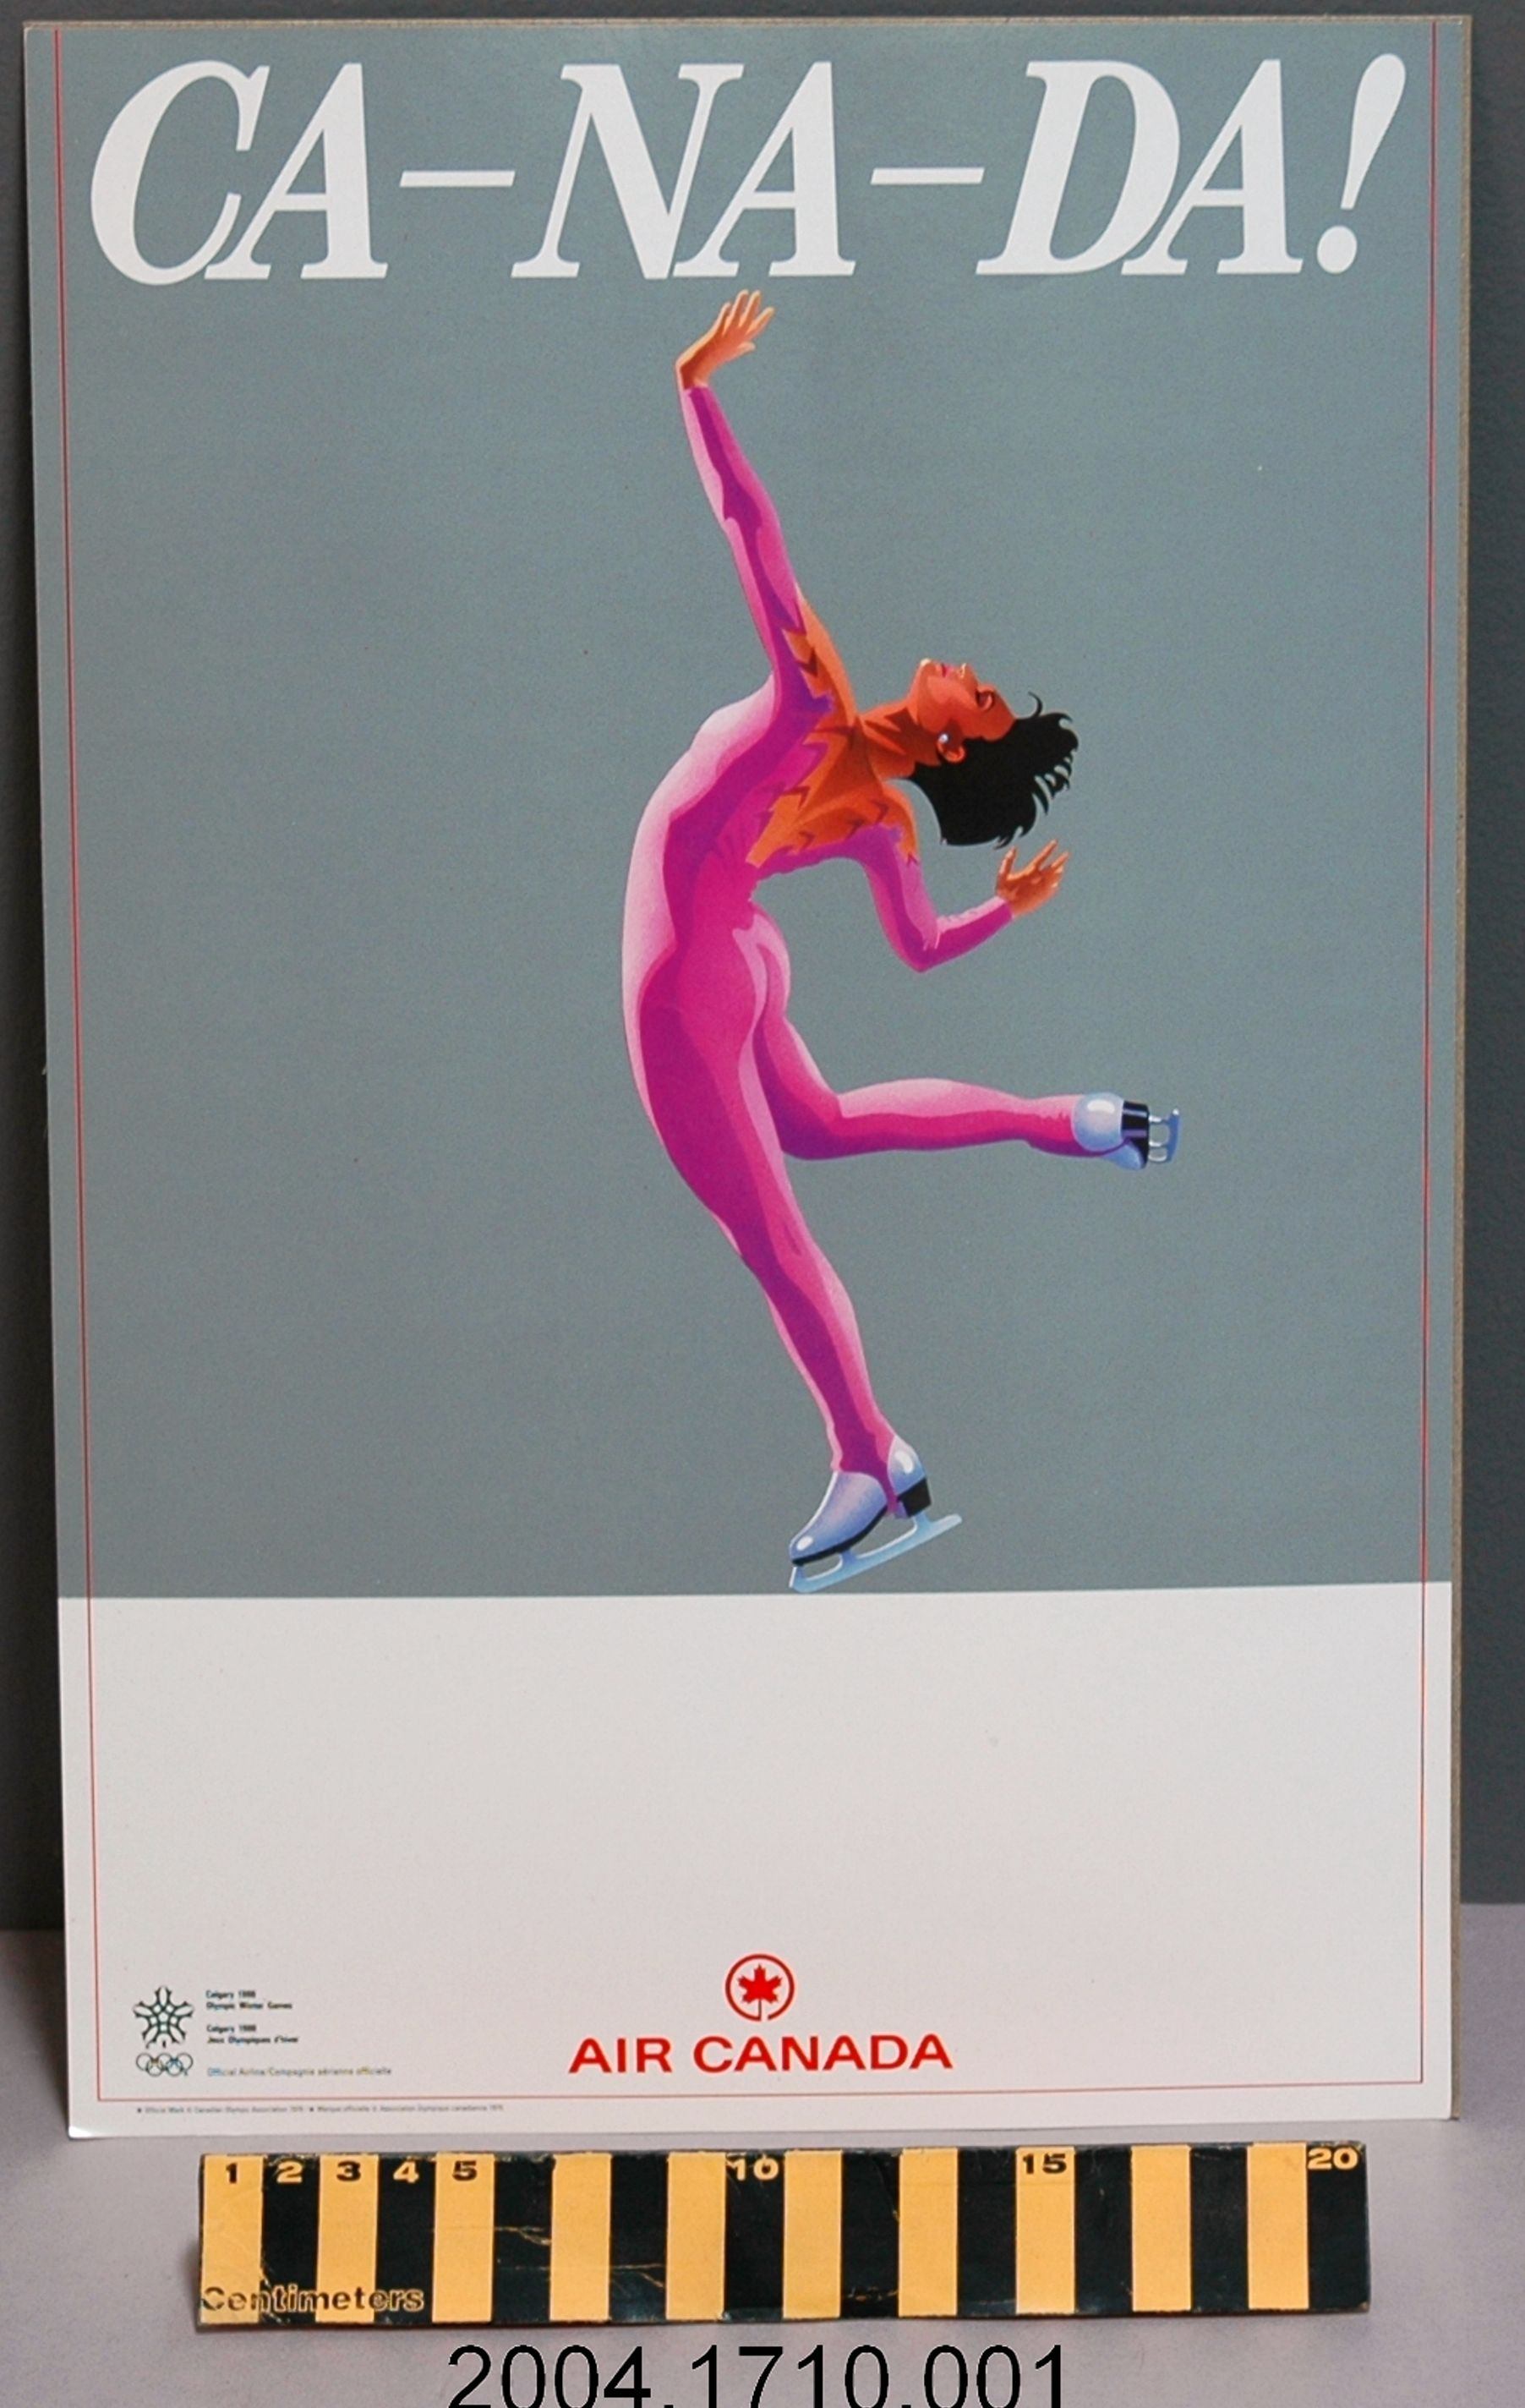 1988 Calgary Winter Olympics Promotional Poster Produced